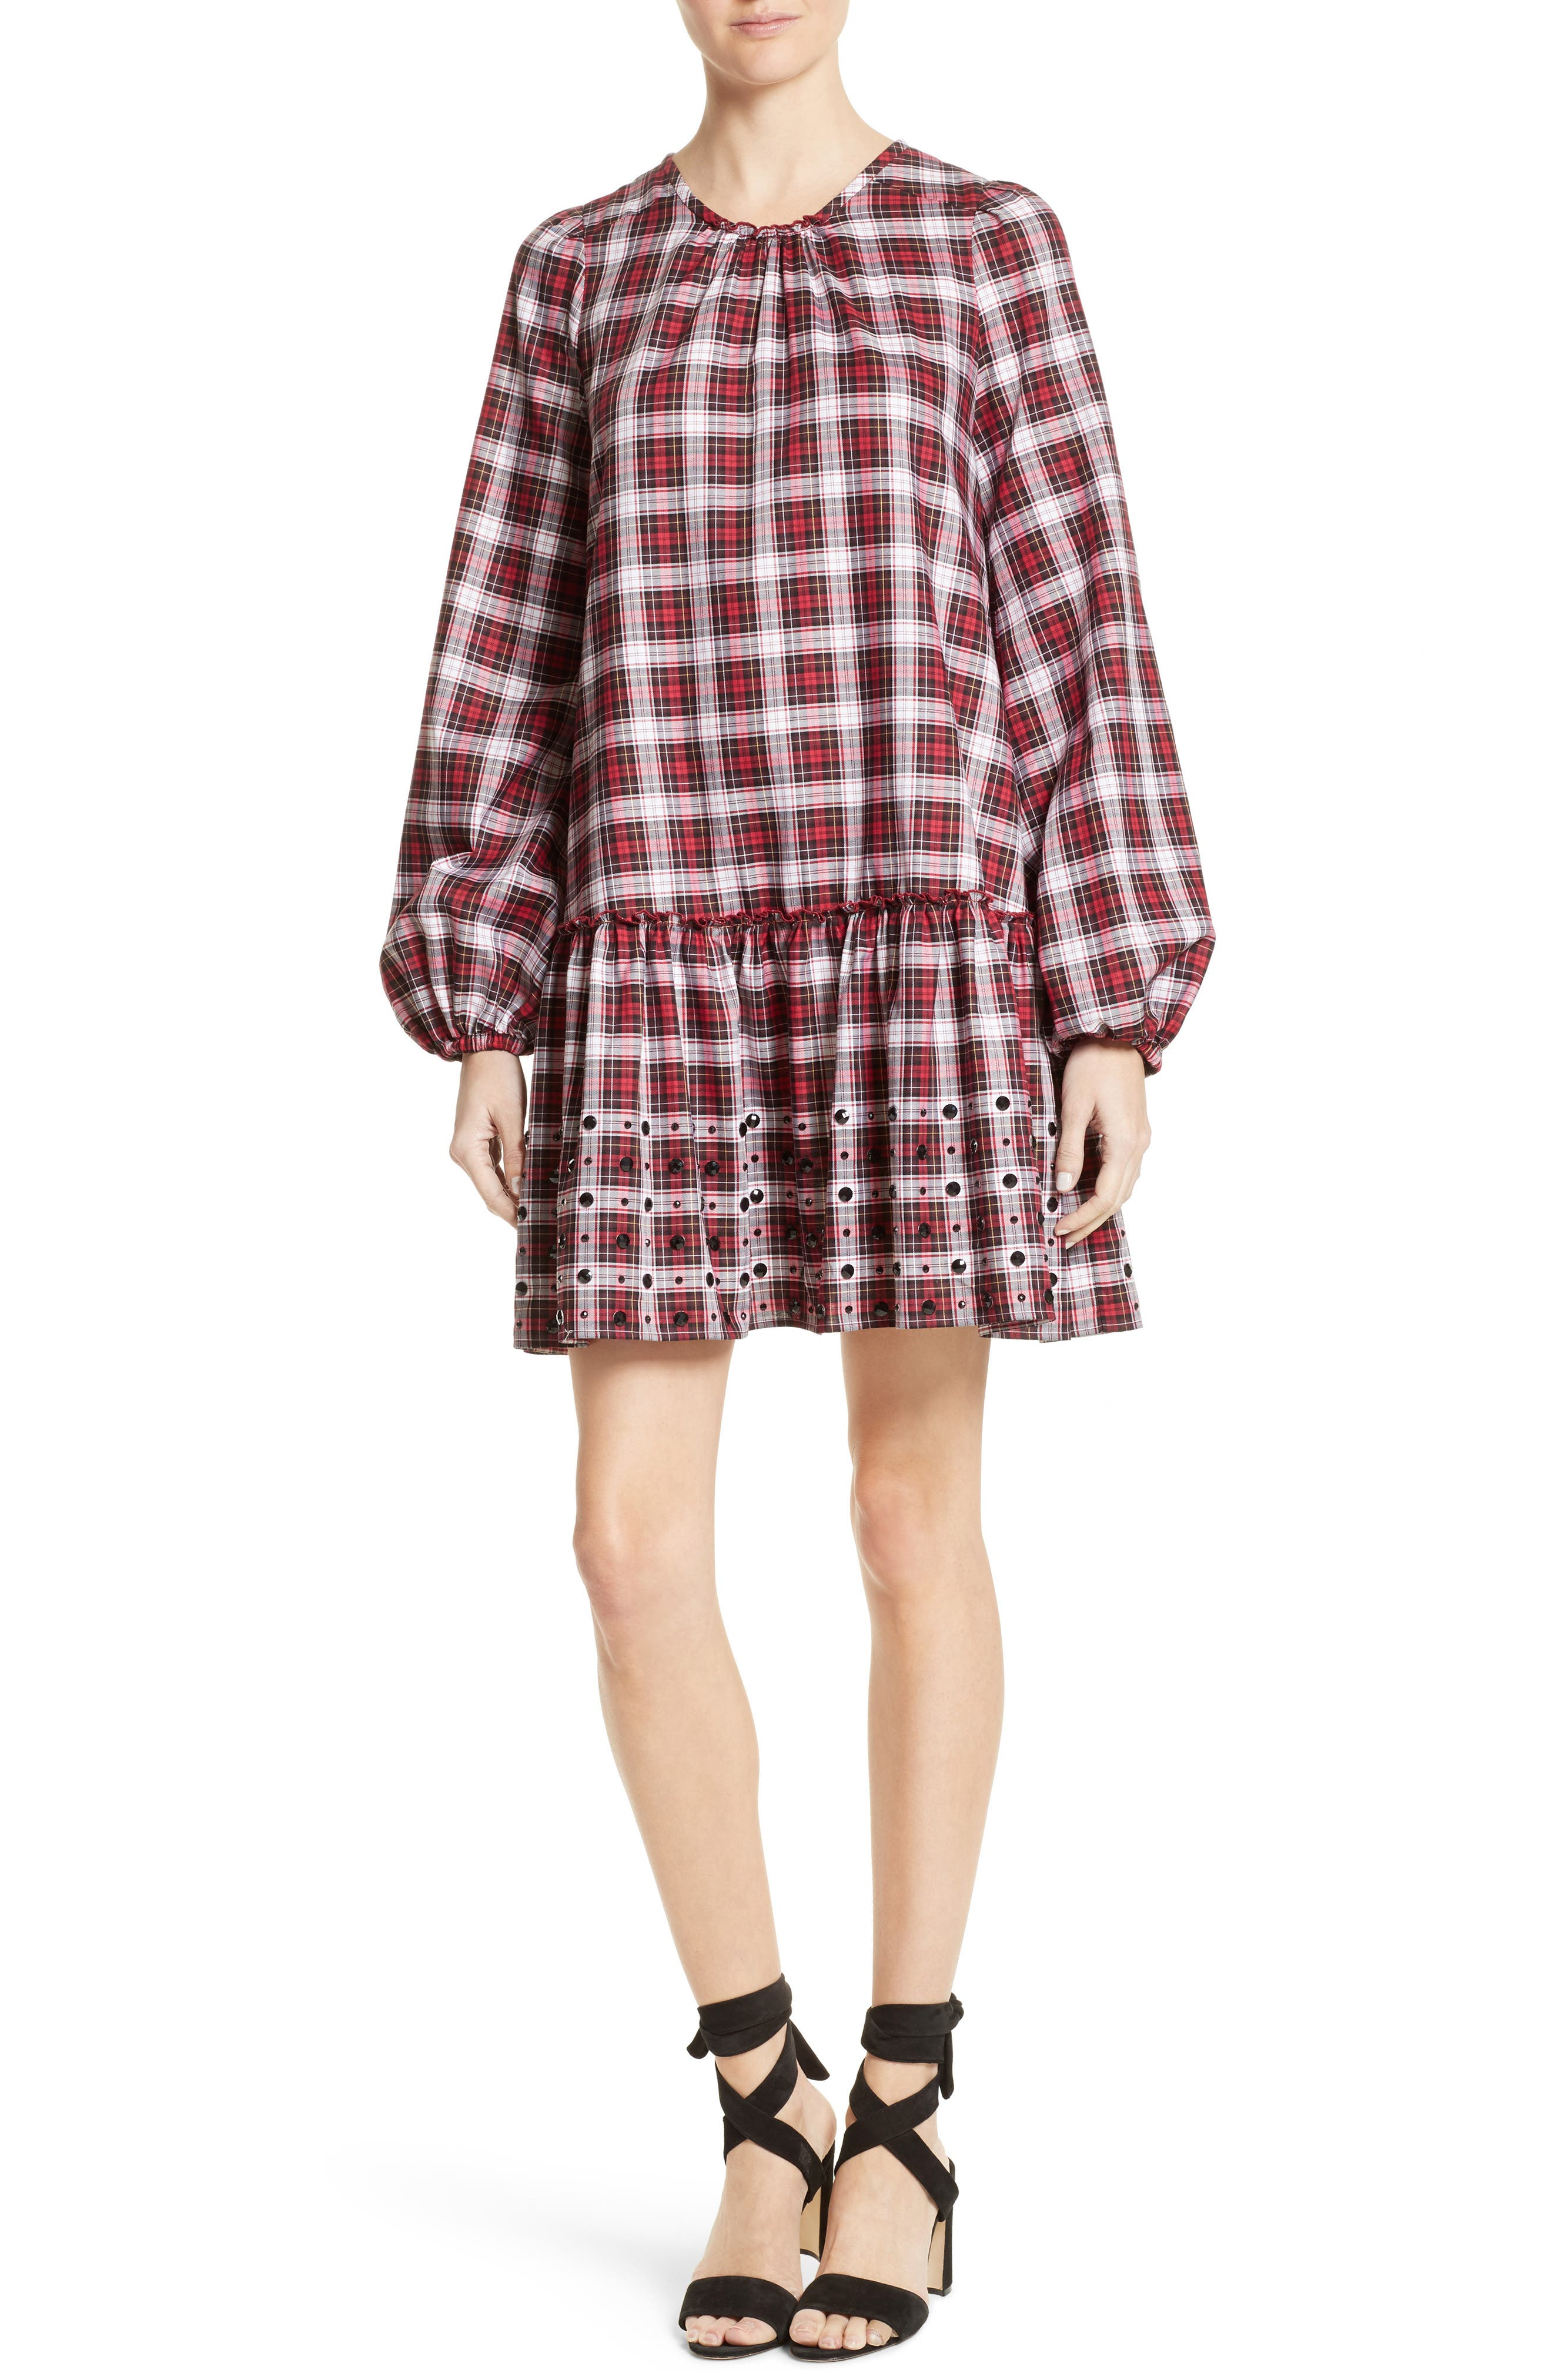 Crystal Embellished Plaid Dress,                             Main thumbnail 1, color,                             100